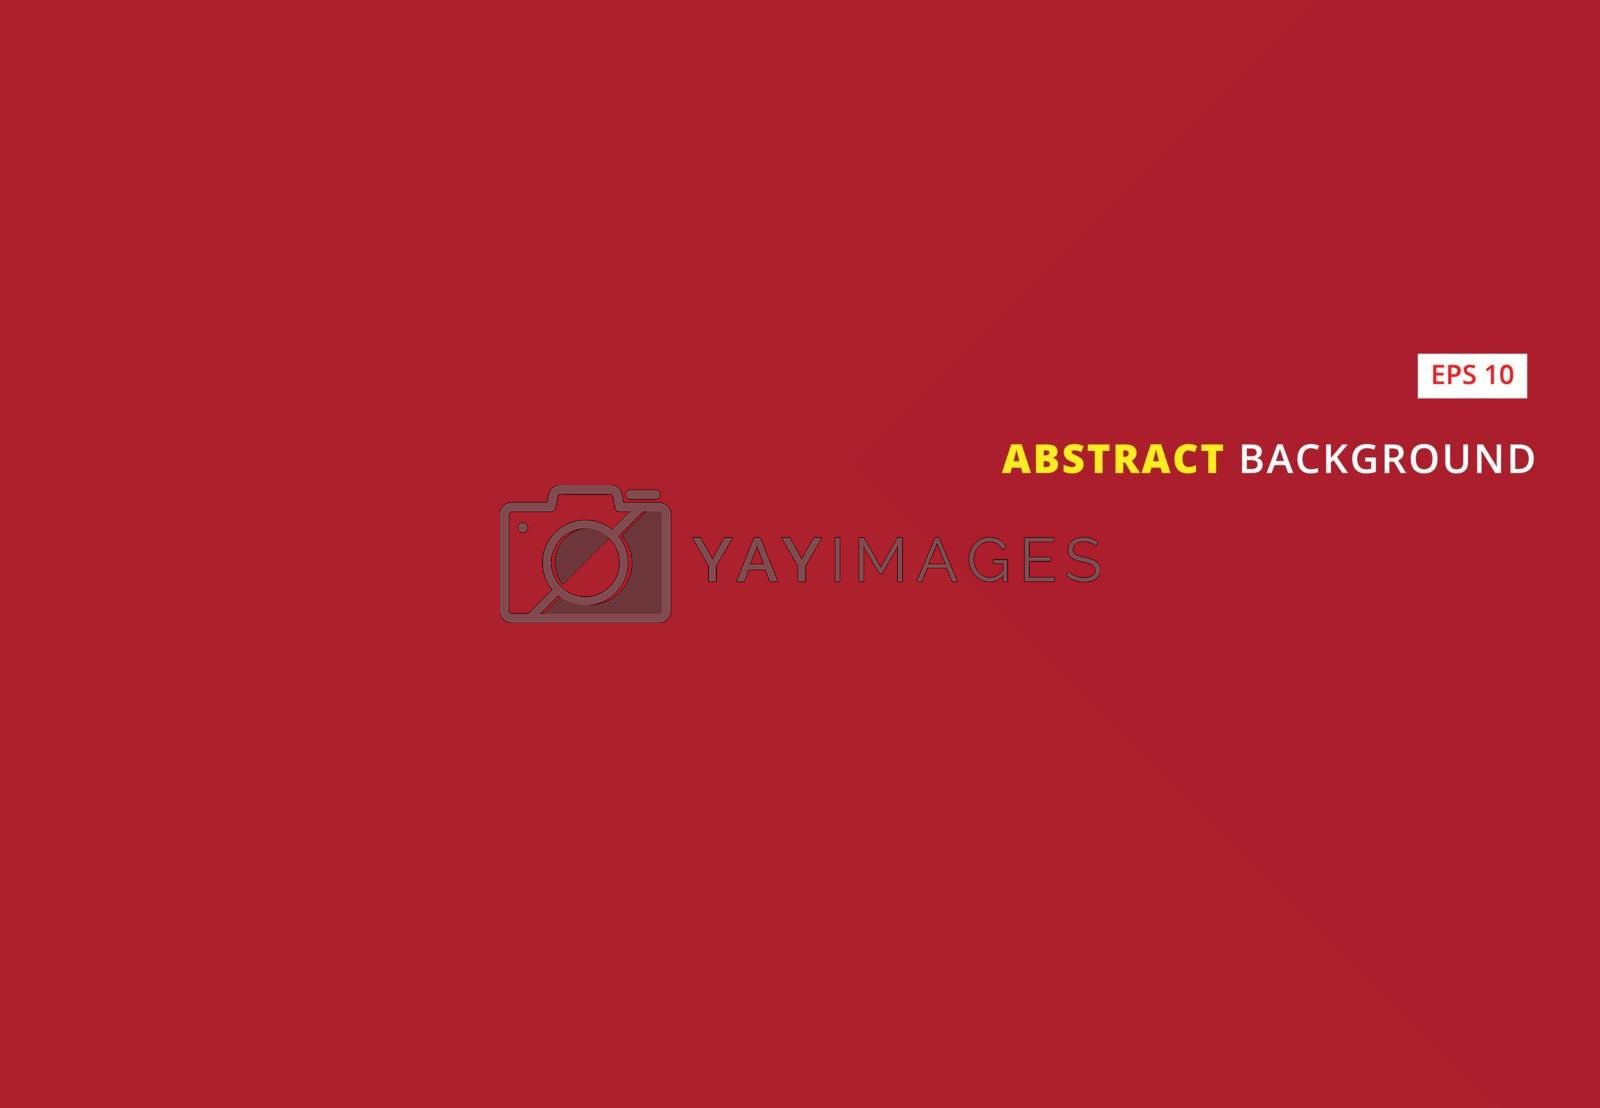 Abstract red image that depicts technology with overlapping diagonal lines. Vector illustration